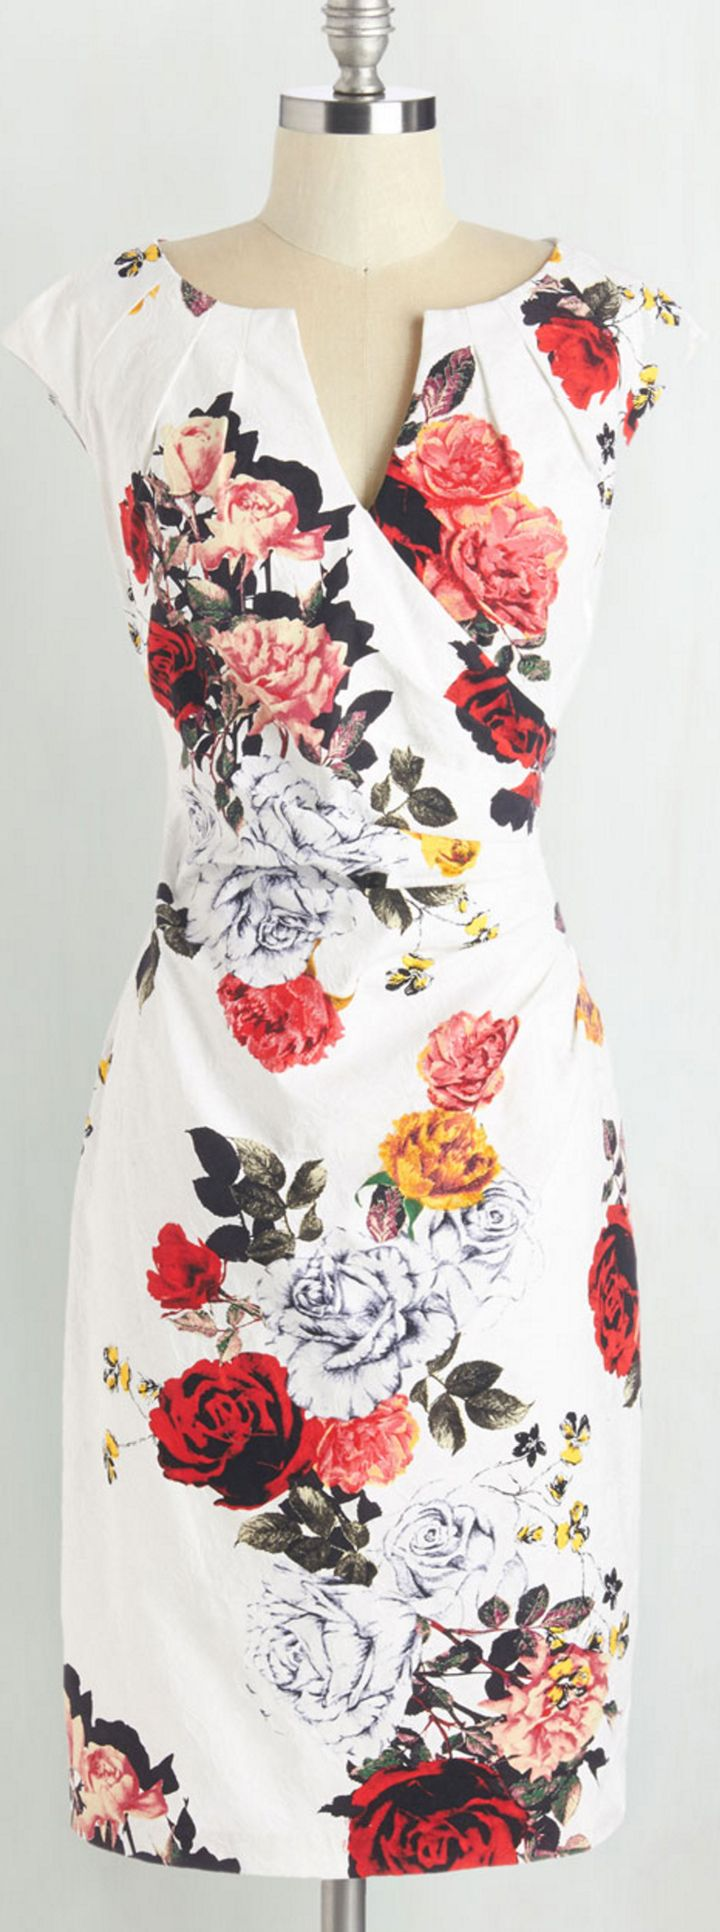 Such a beautiful floral dress for spring!